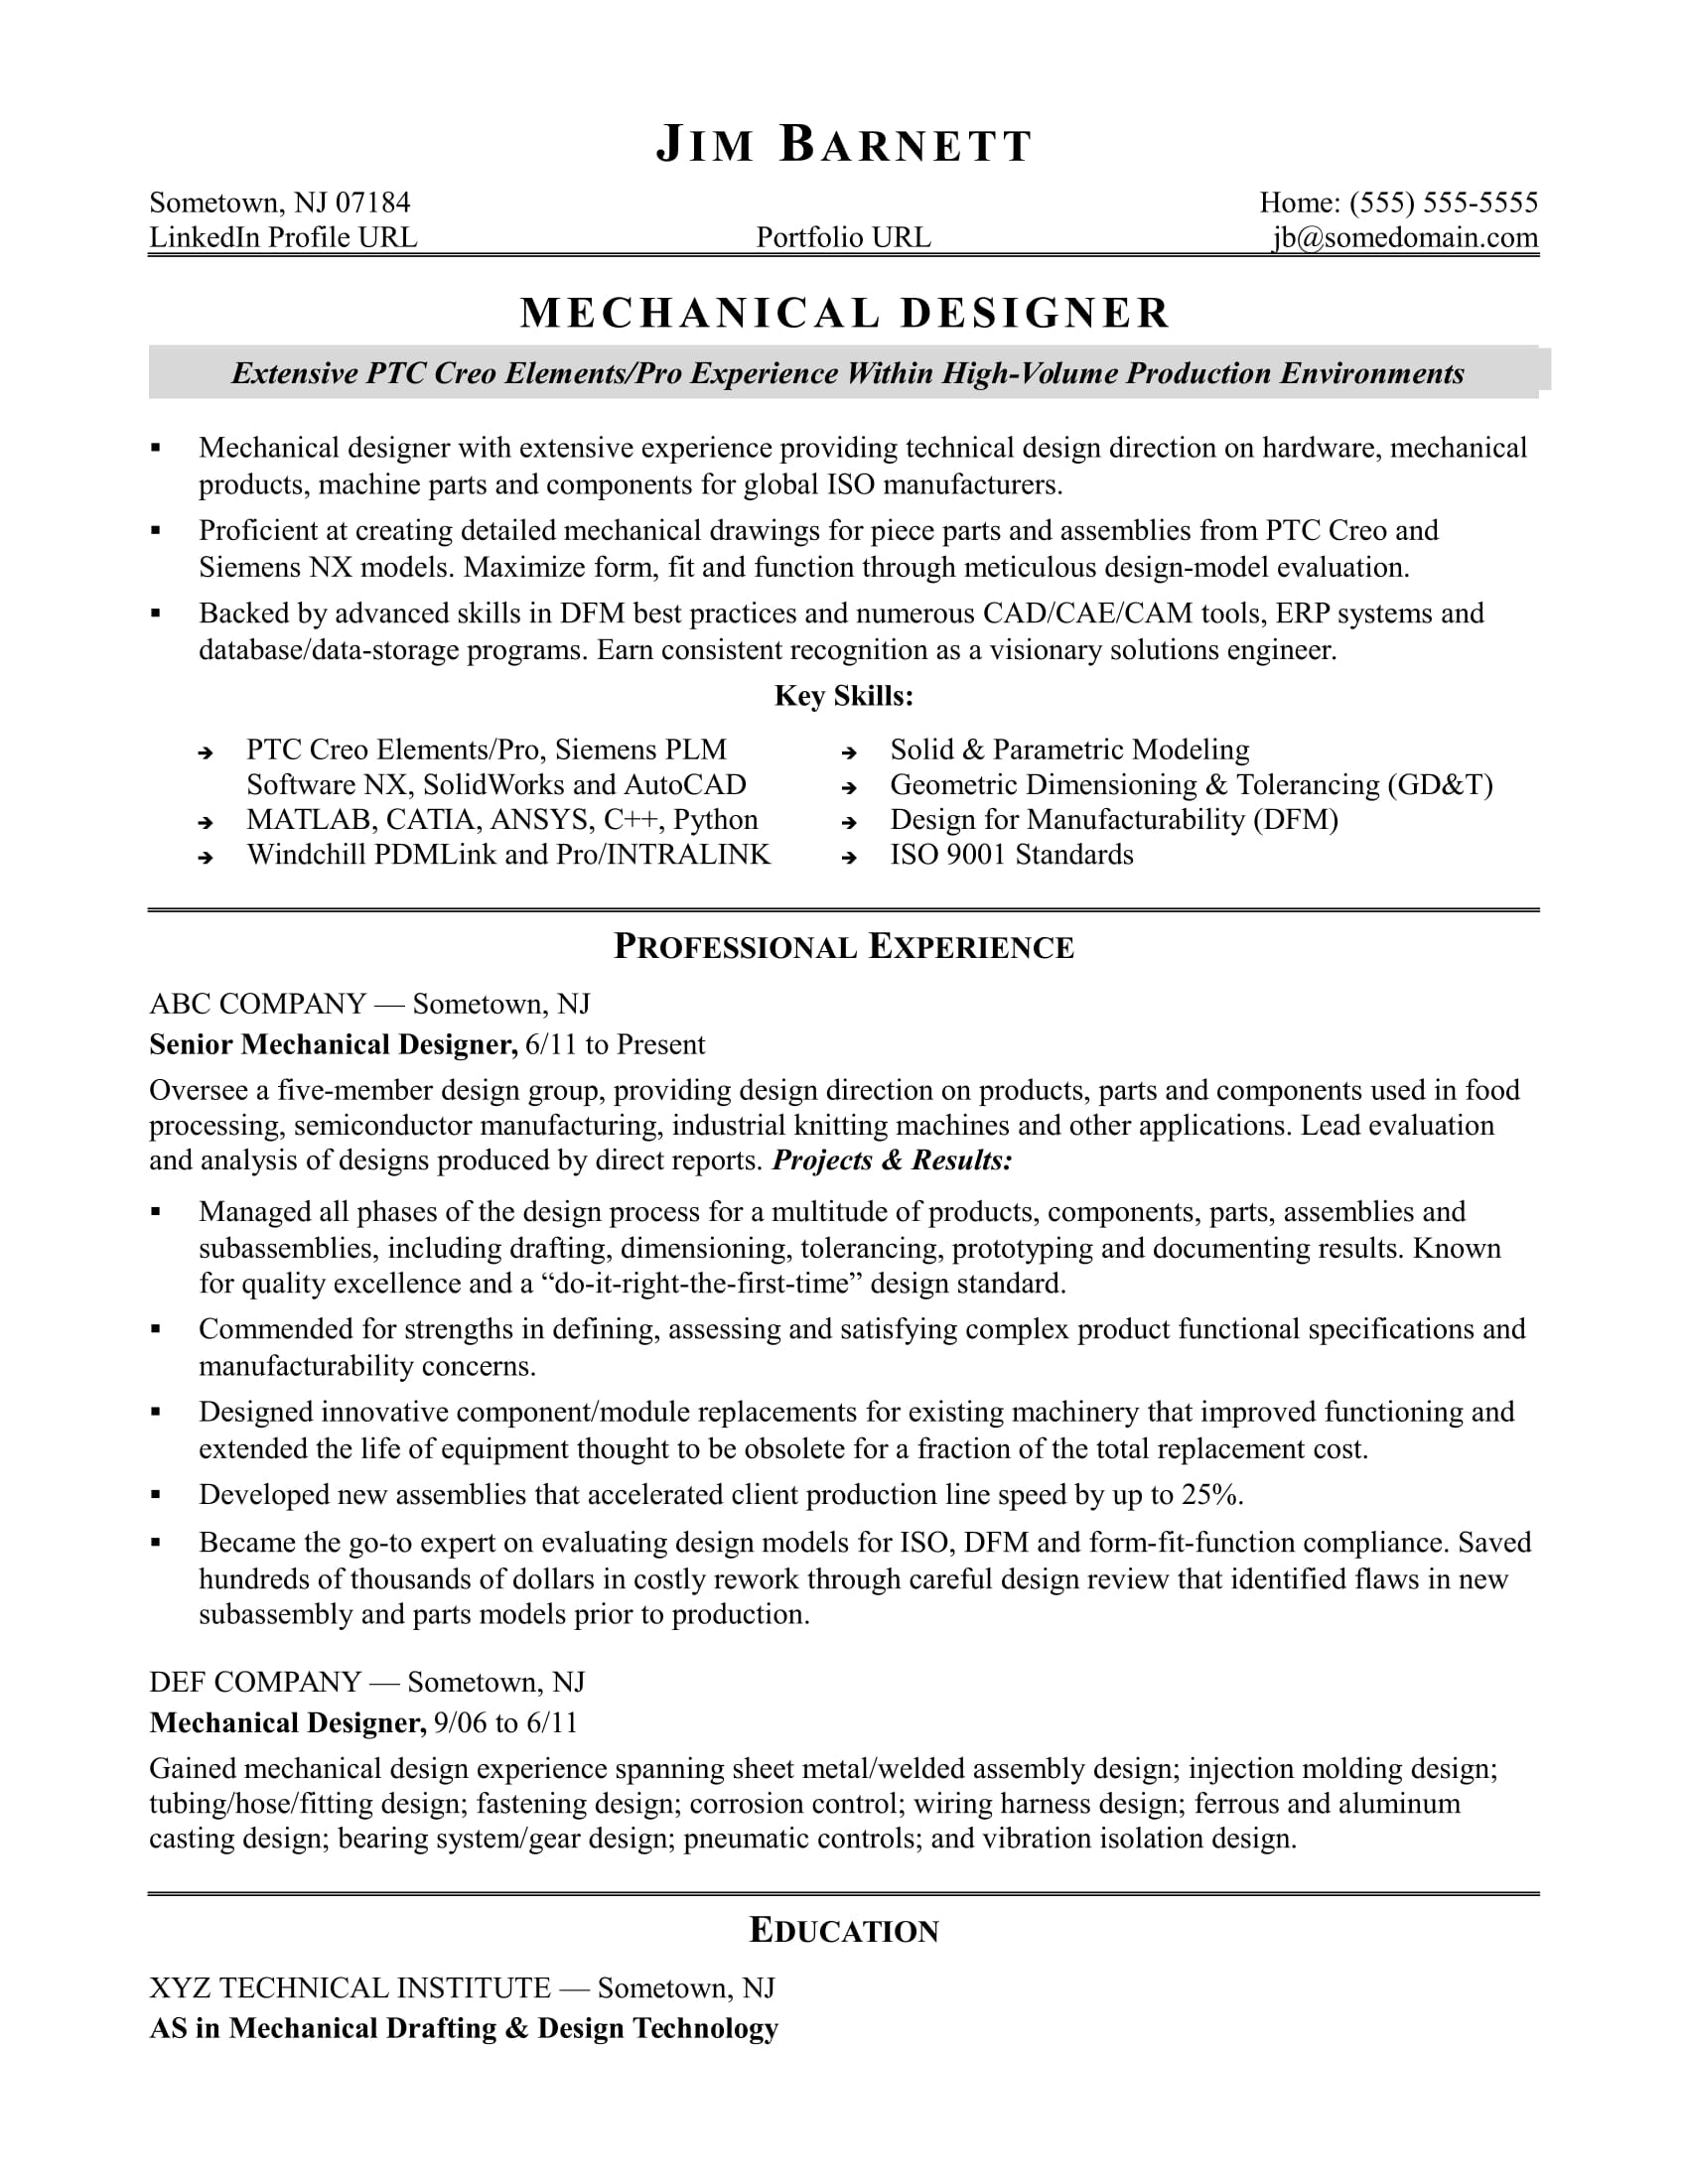 hardware design engineer resume example-Sample resume for an experienced mechanical designer 7-q